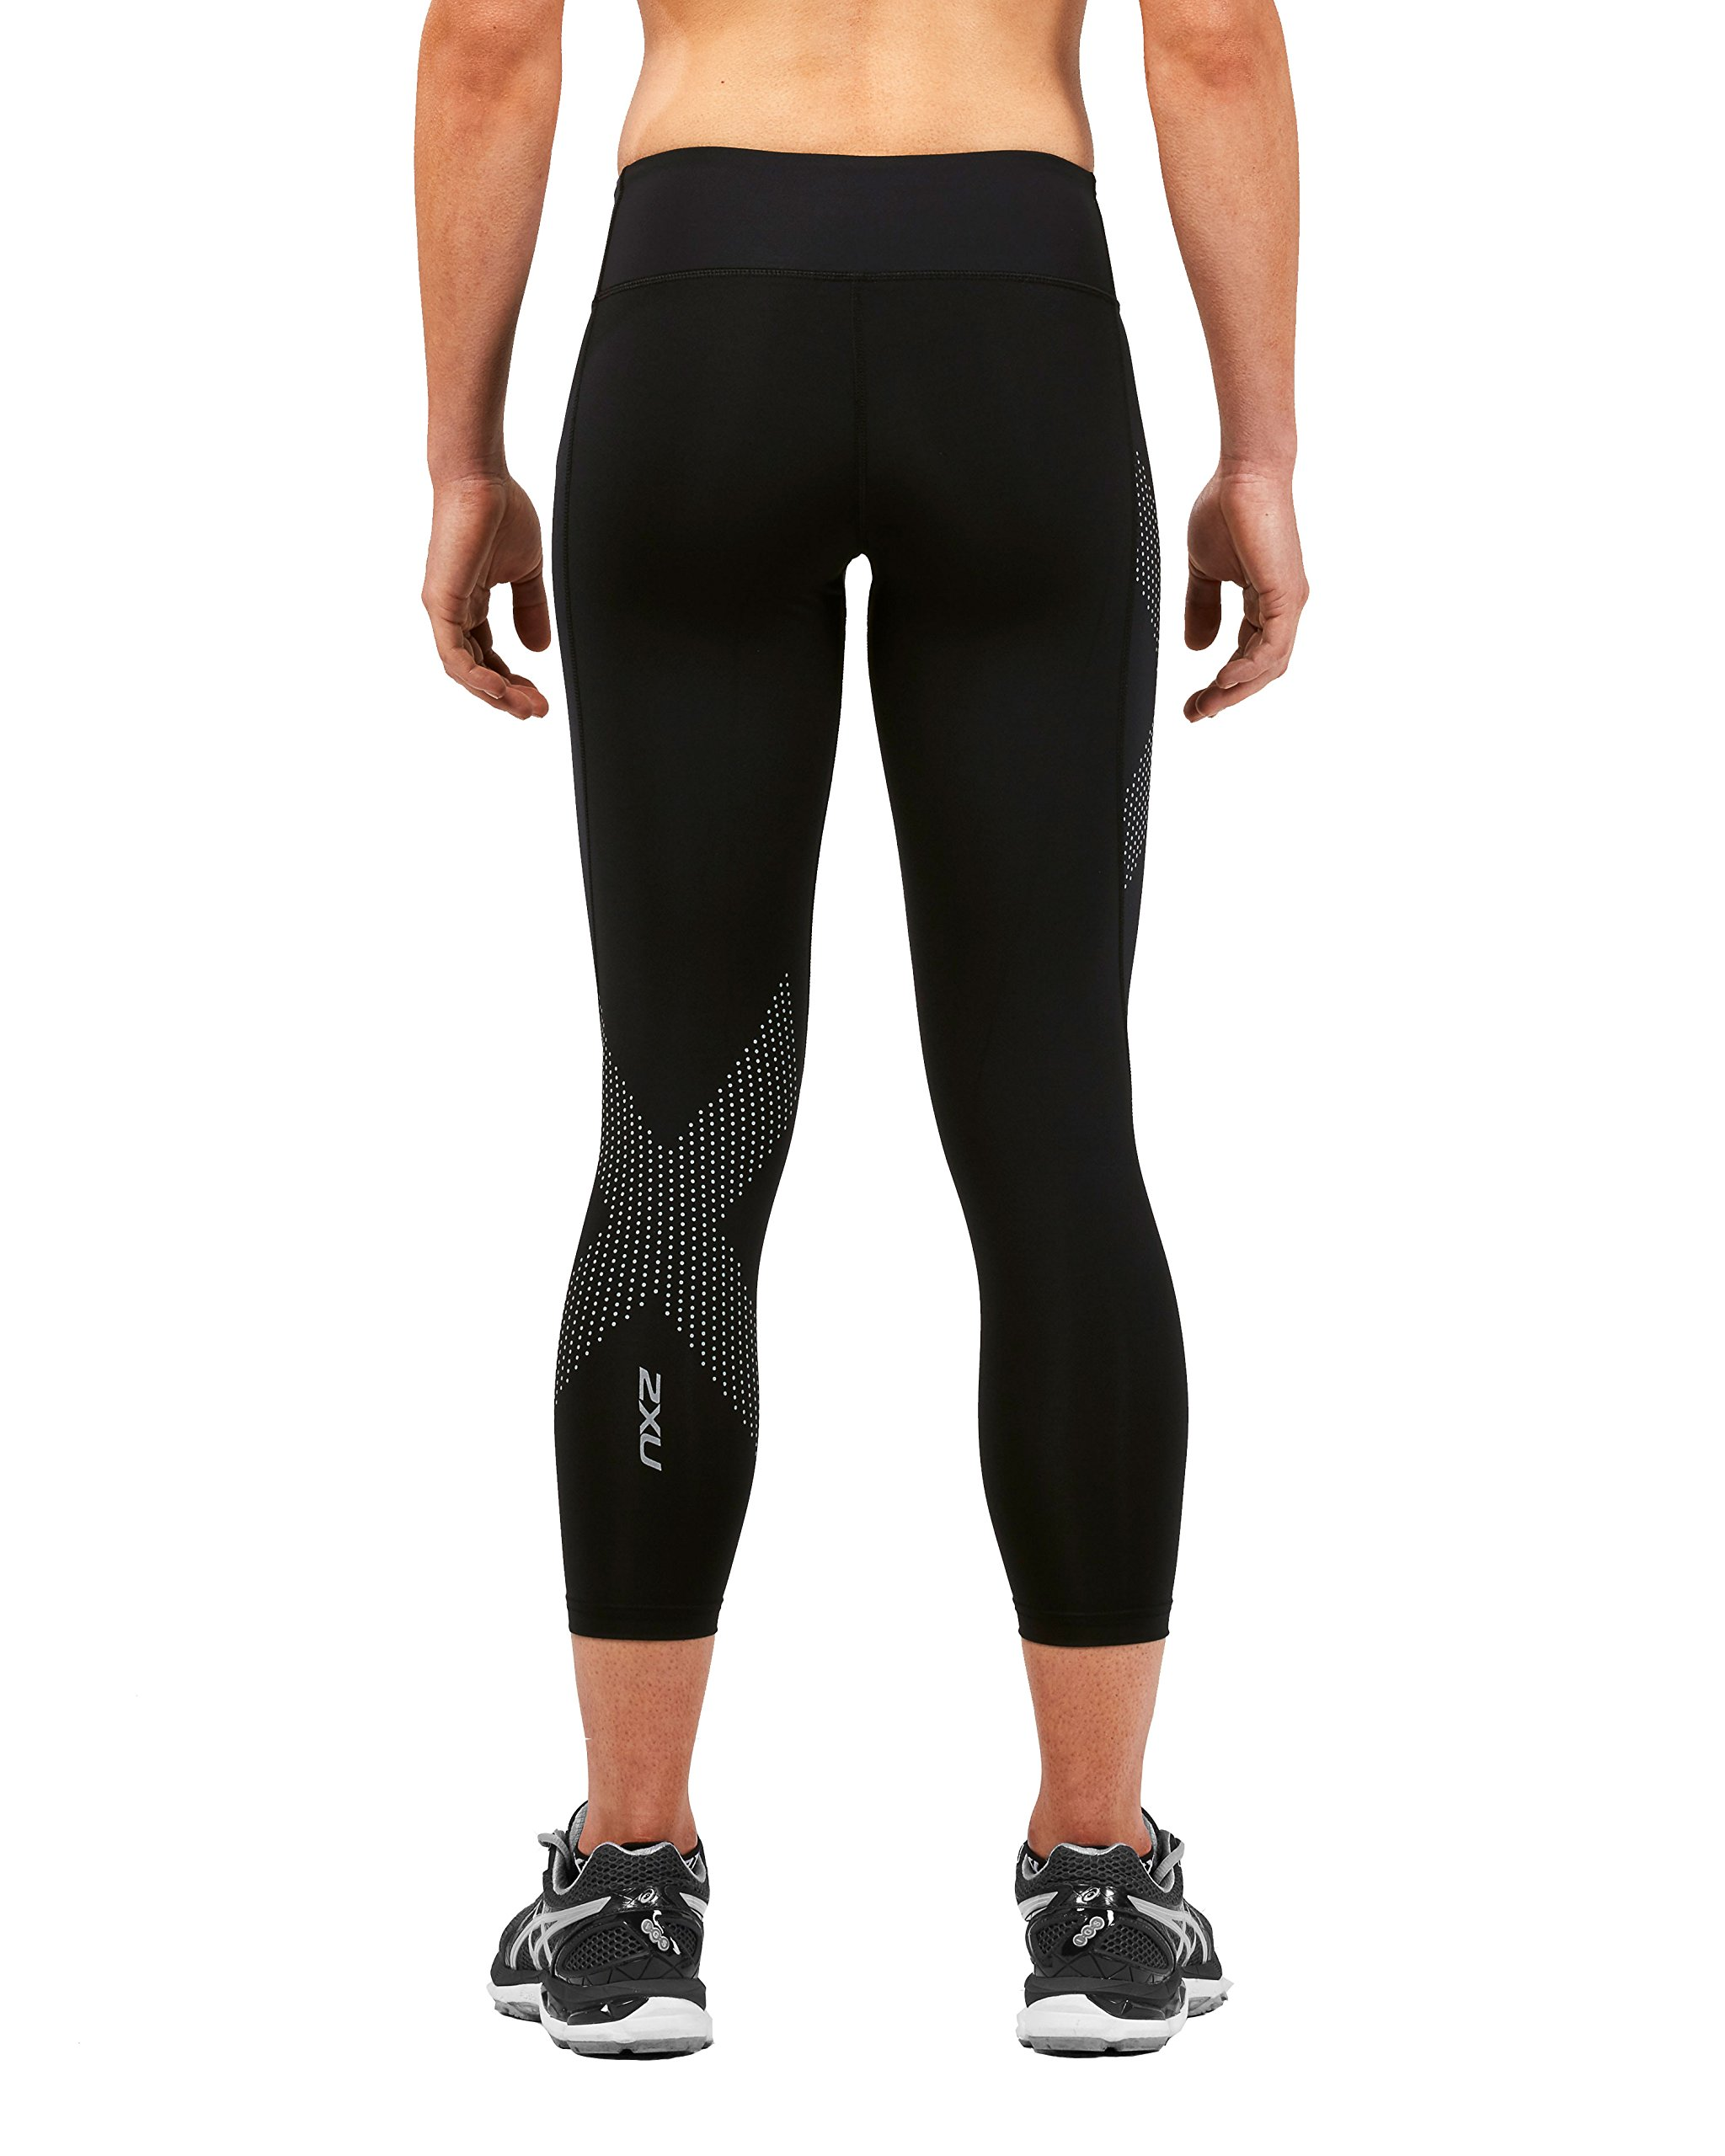 2XU Women's Mid-Rise Compression 7/8 Tights (Black/Dotted Reflective Logo, Small) by 2XU (Image #3)